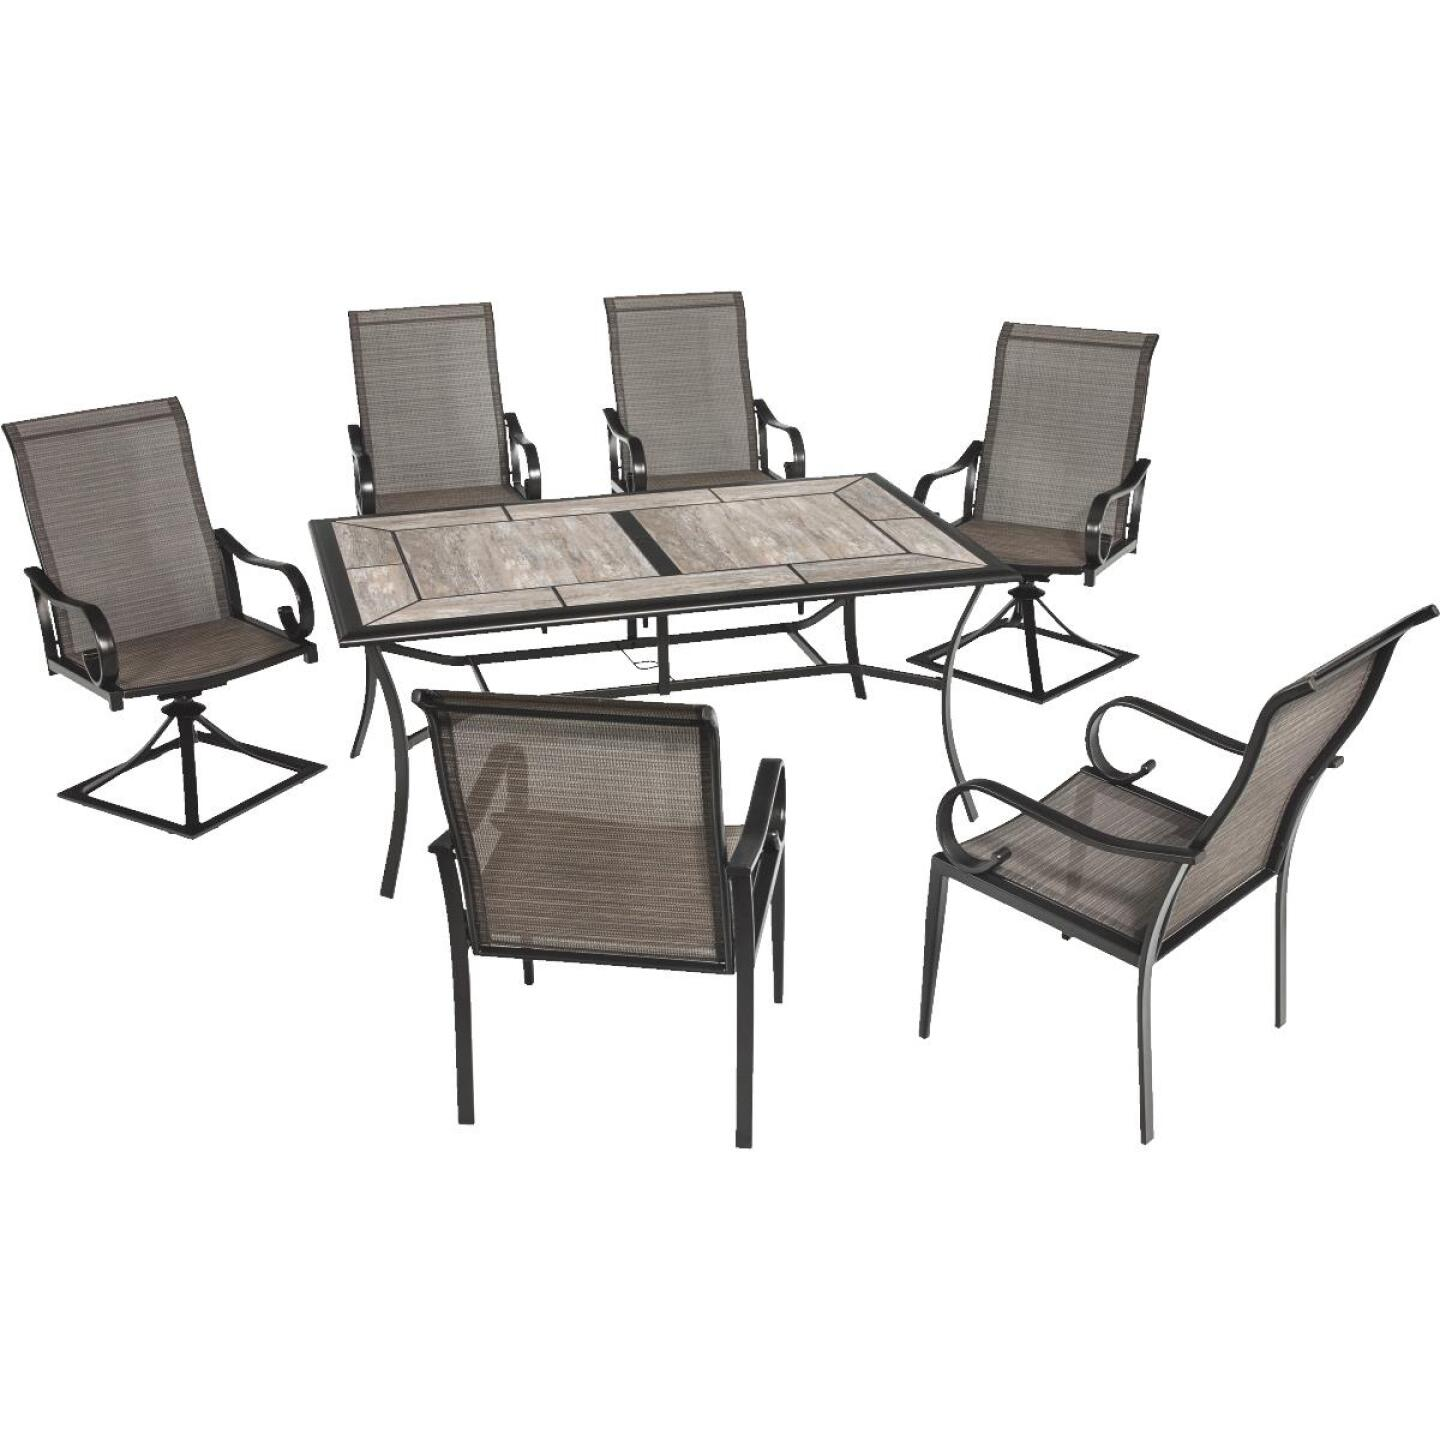 Outdoor Expressions Berkshire 7-Piece Dining Set Image 72